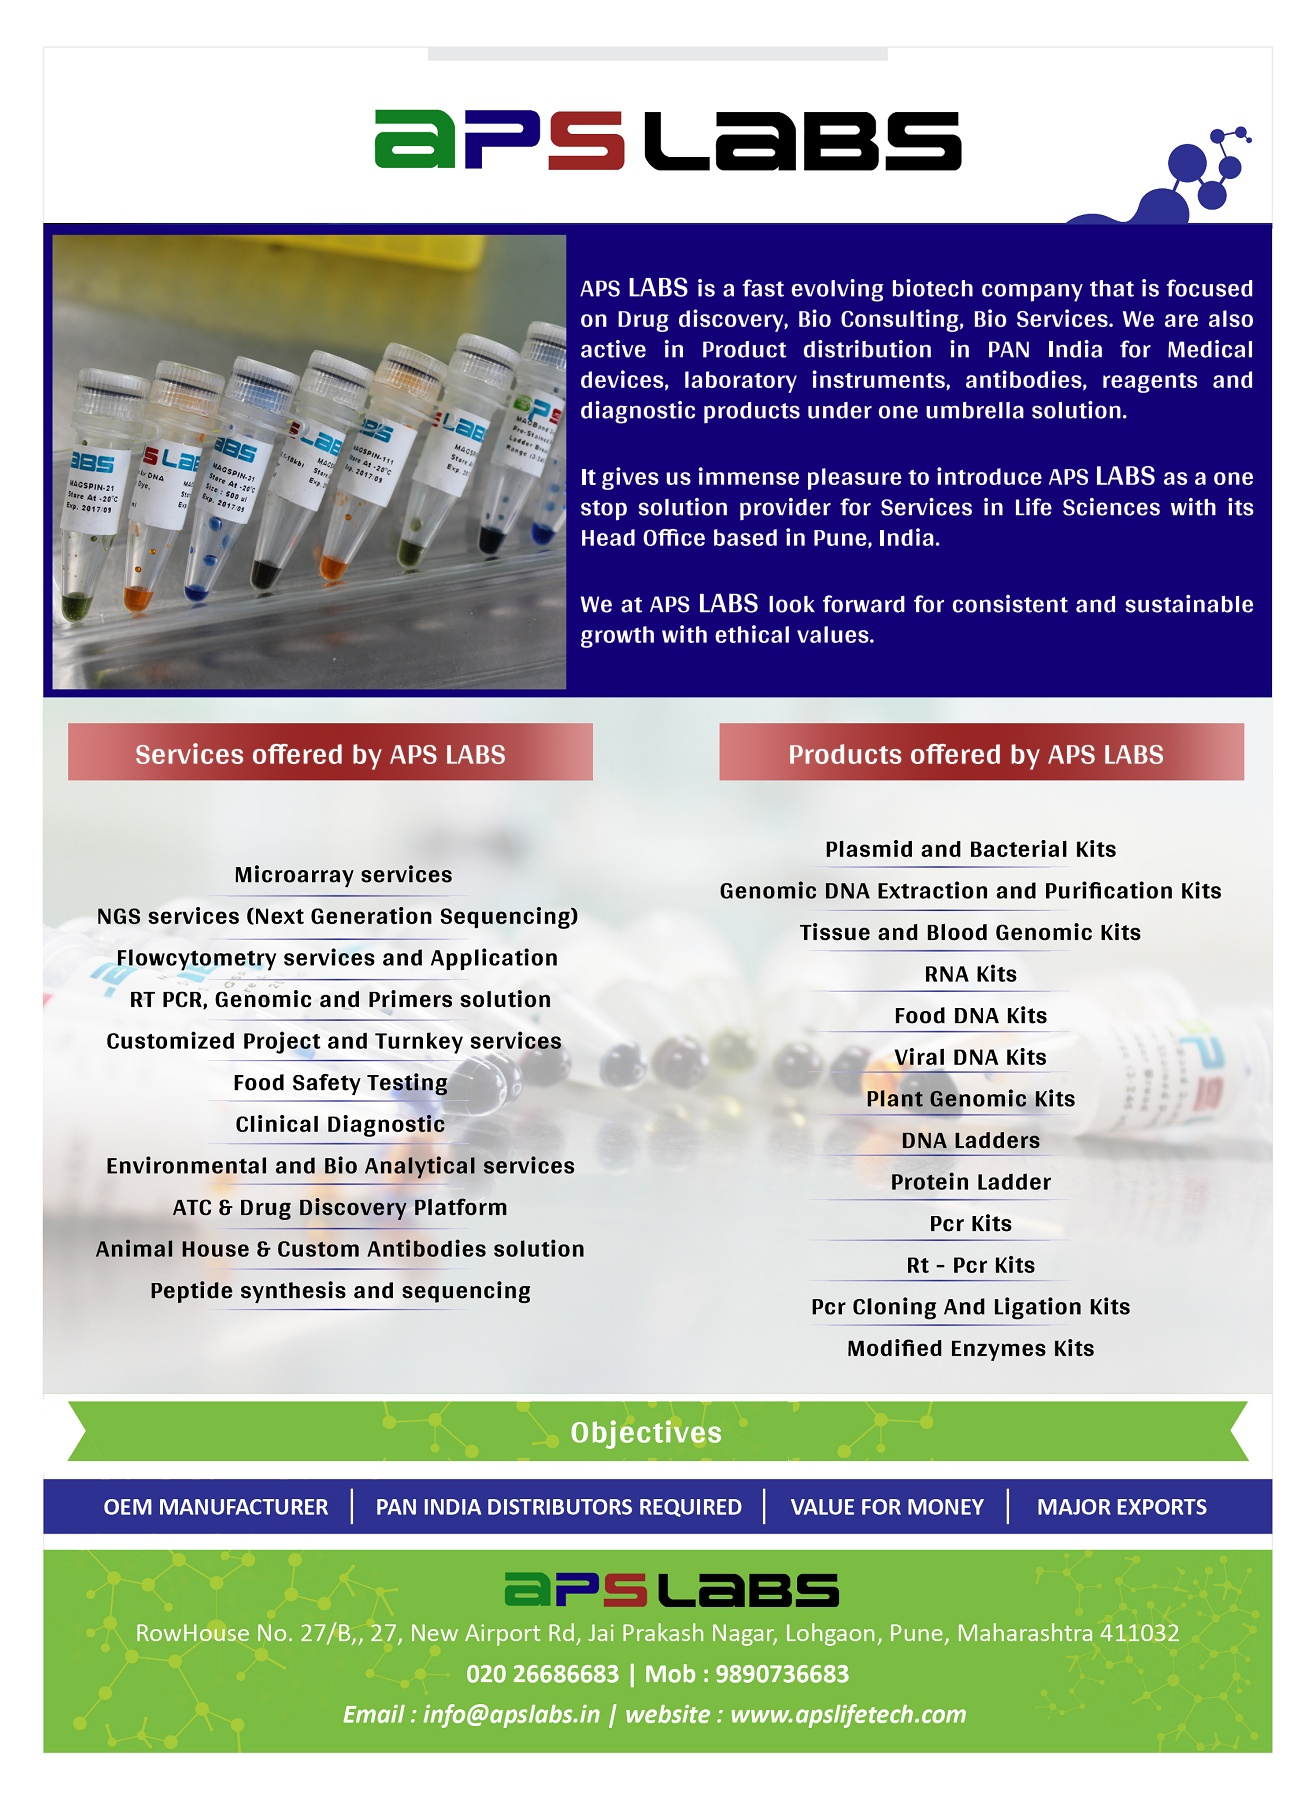 BioSpectrum India February 2019 Pages 1 - 50 - Text Version   AnyFlip